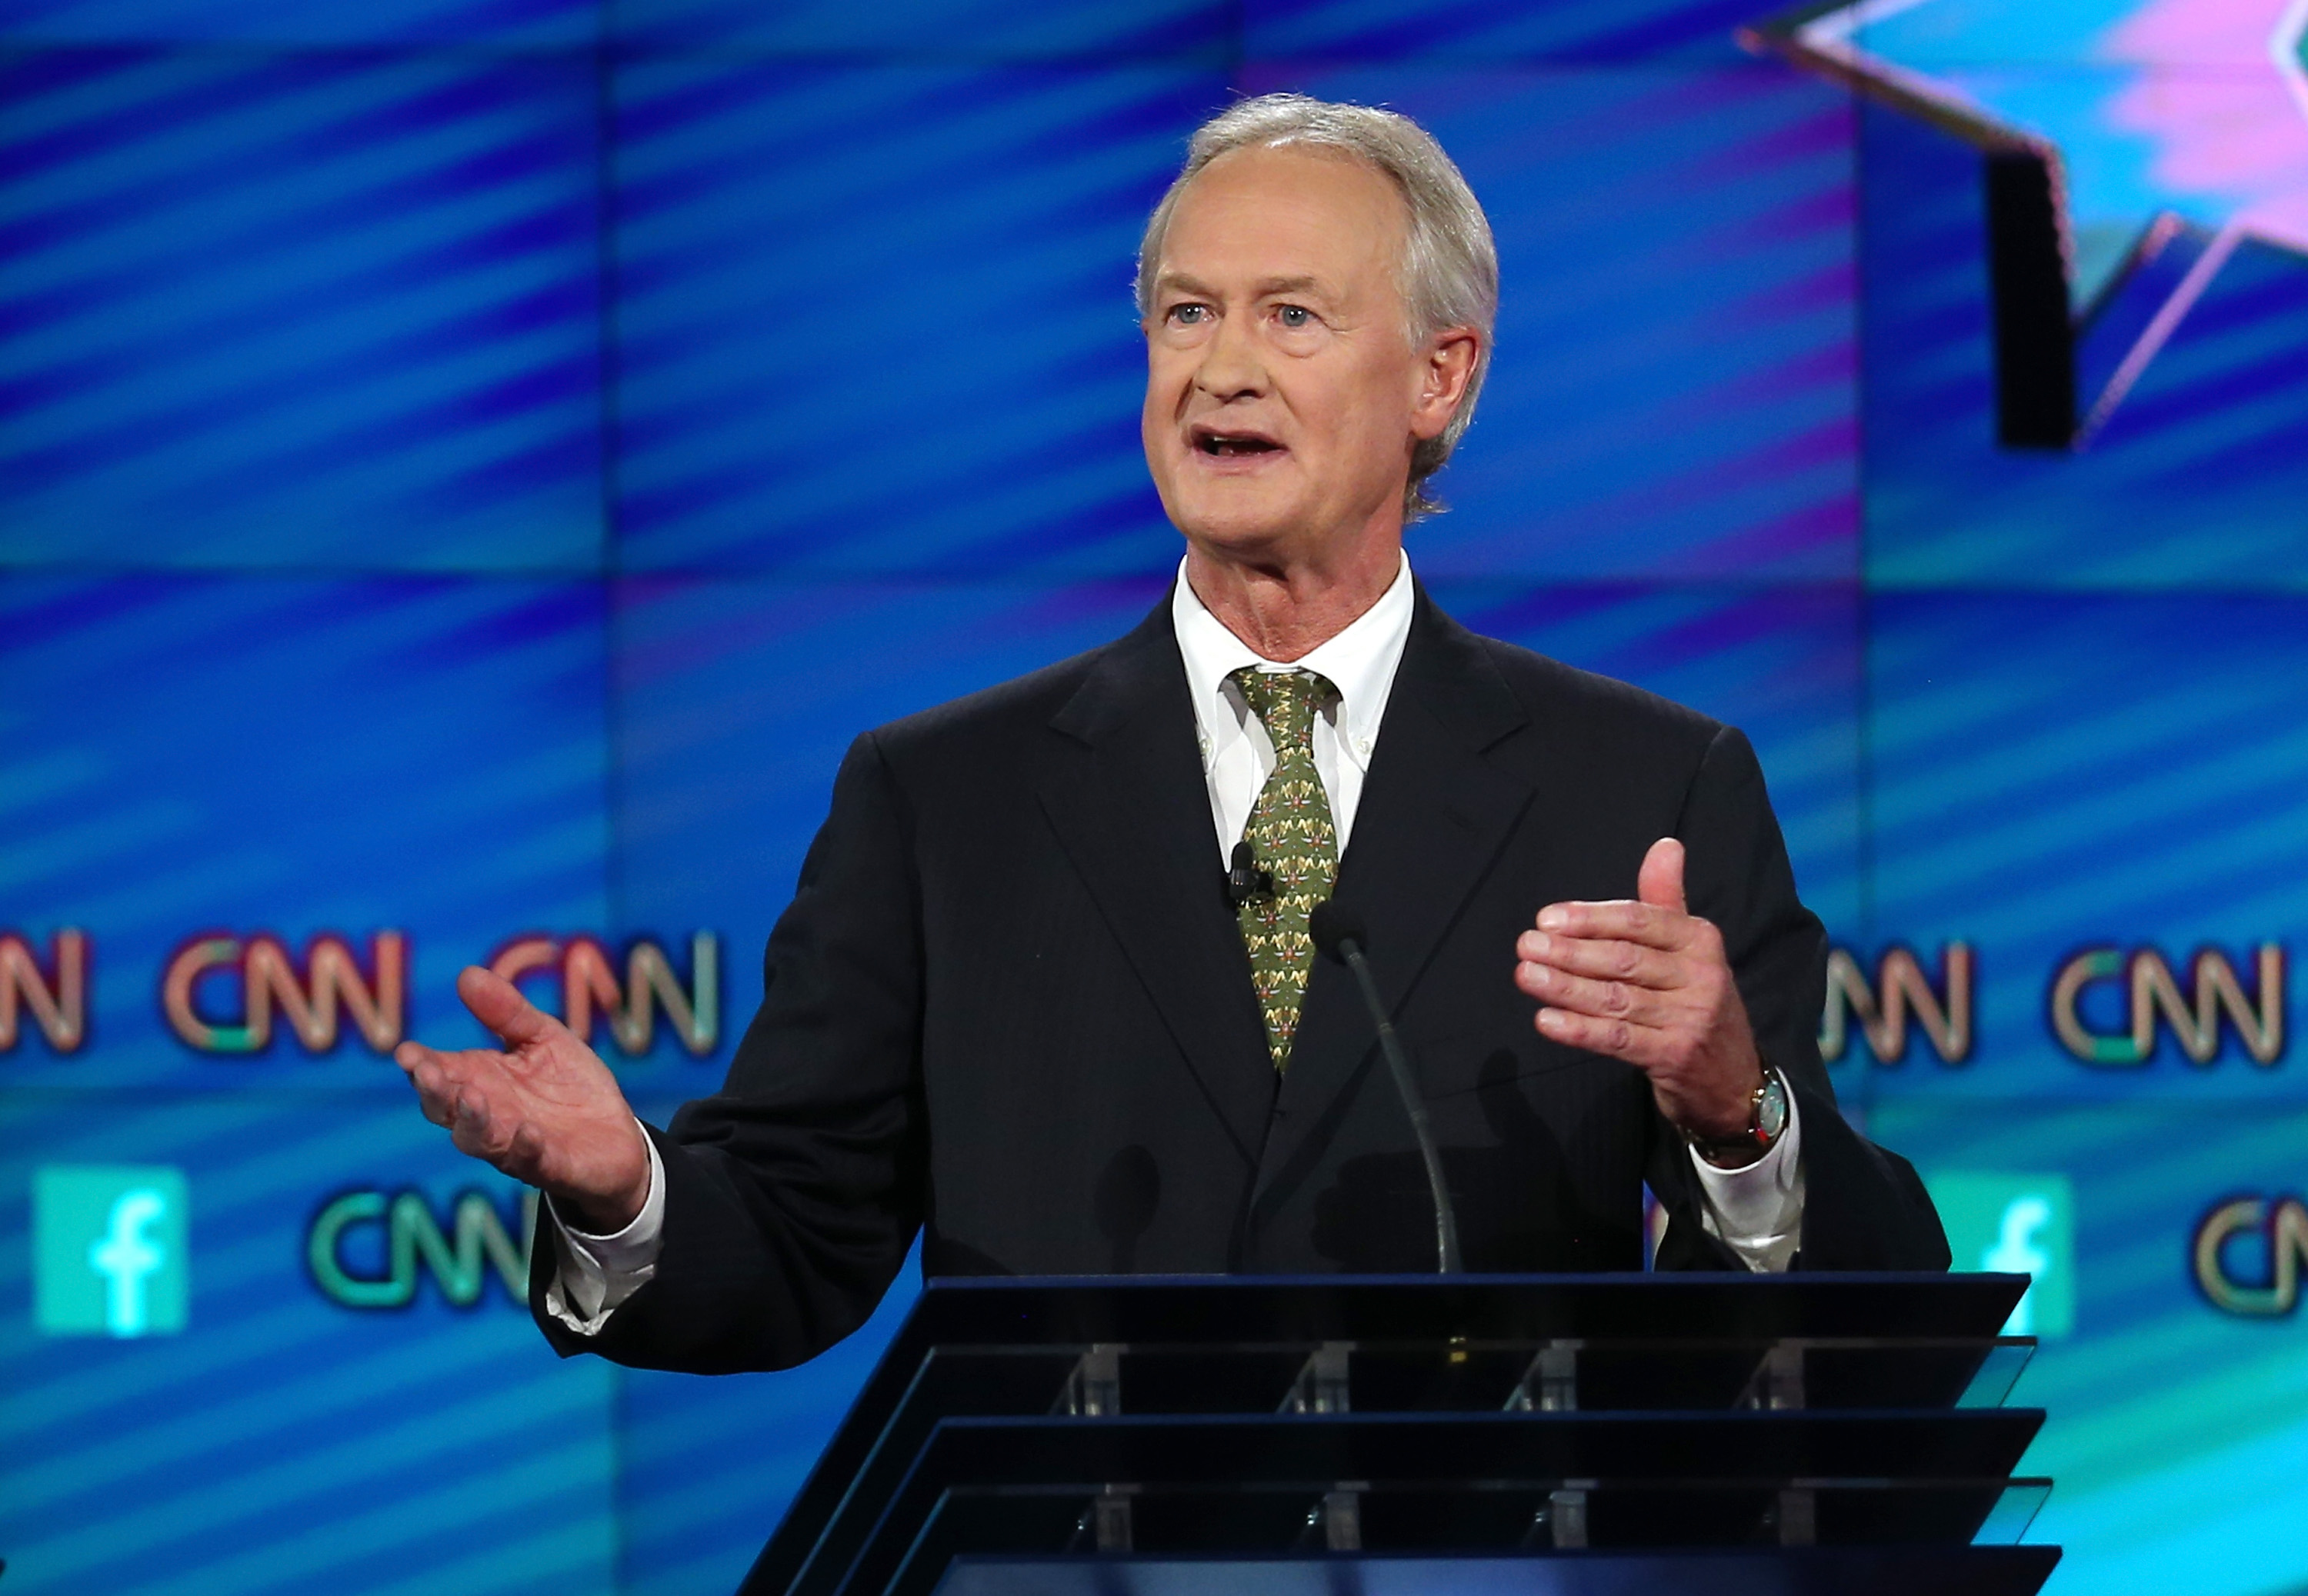 Democratic presidential candidate Lincoln Chafee takes part in a presidential debate sponsored by CNN and Facebook at Wynn Las Vegas in Las Vegas, on Oct. 13, 2015.